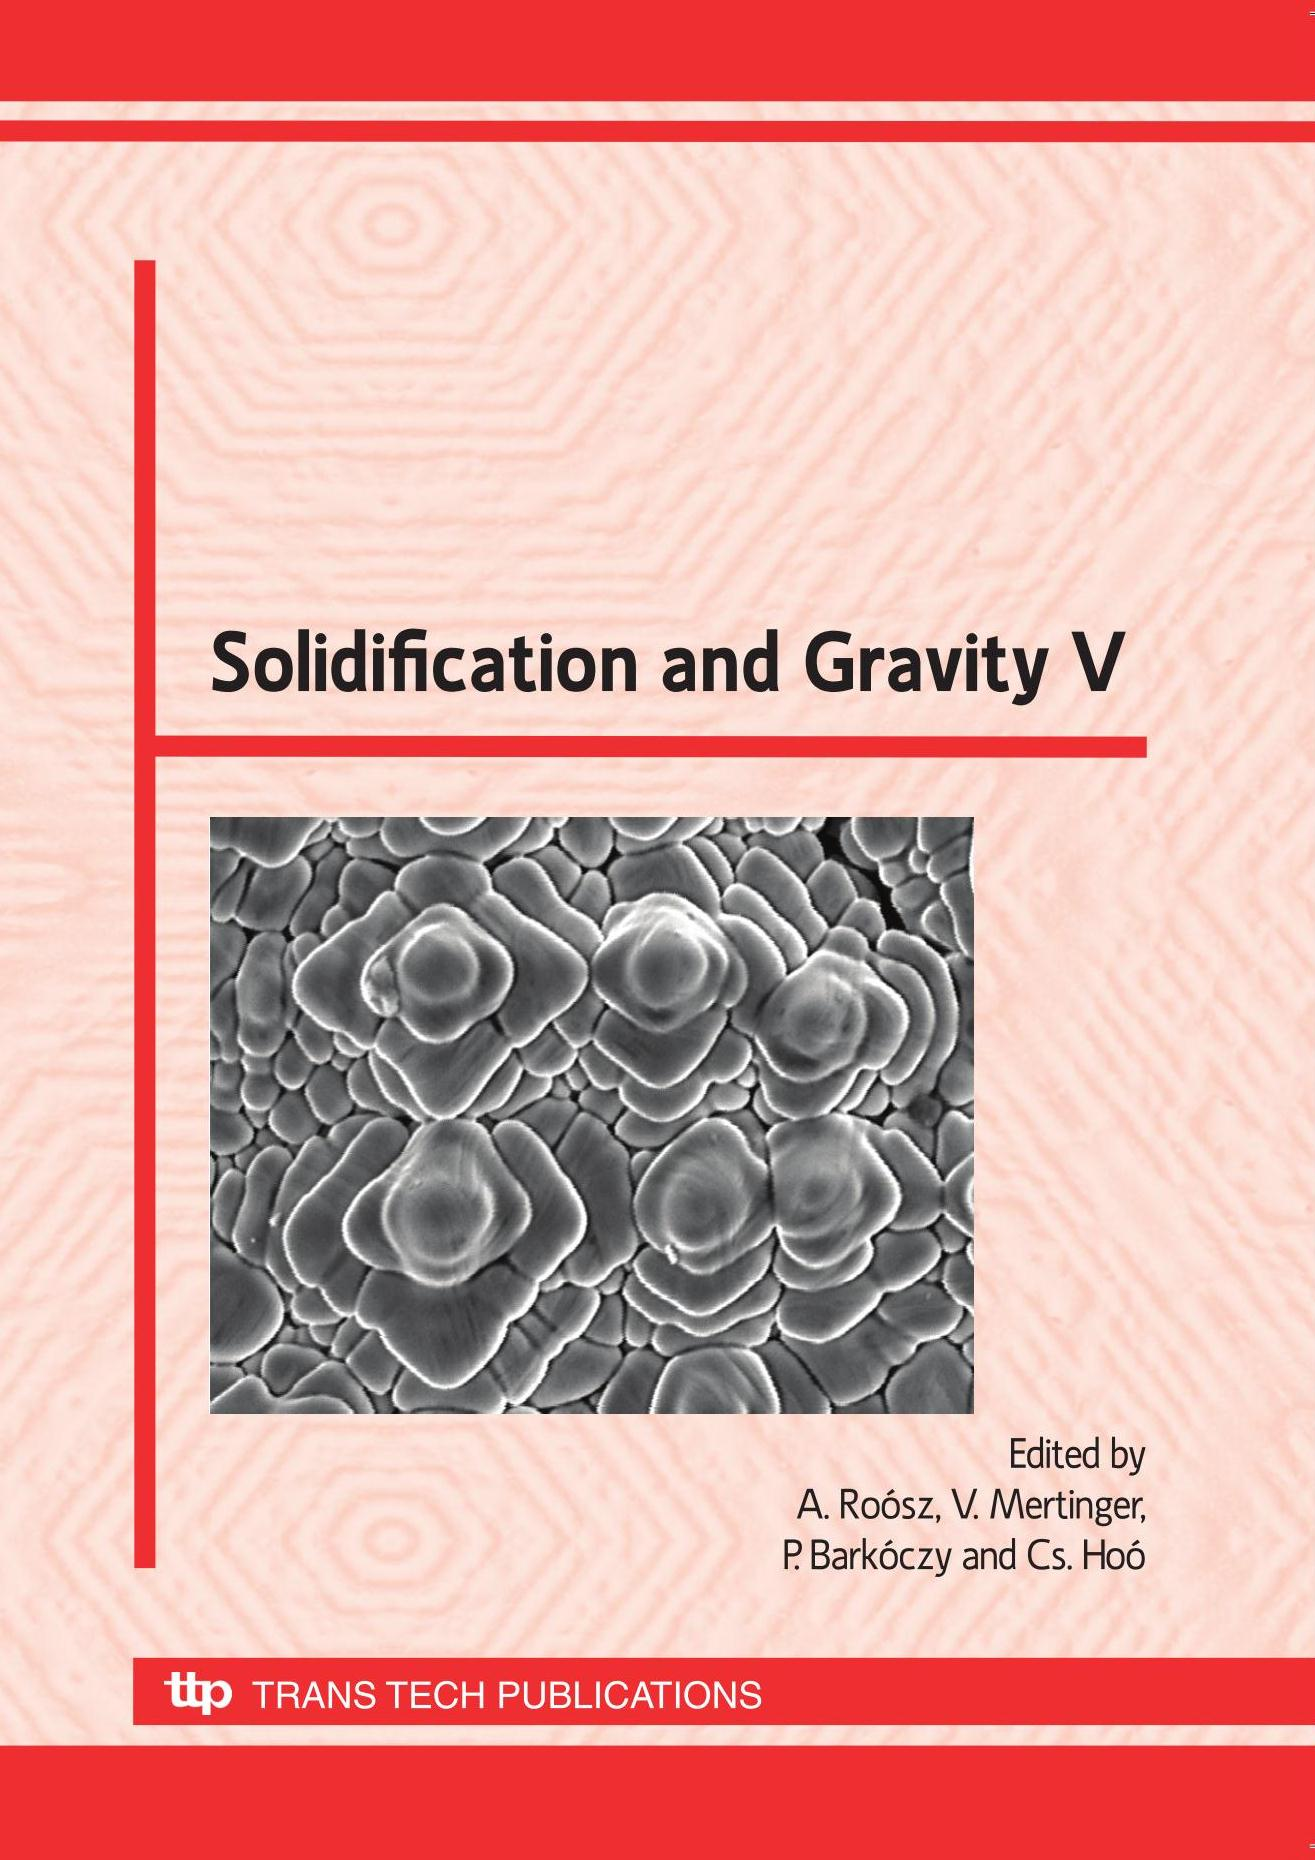 Solidification and Gravity V